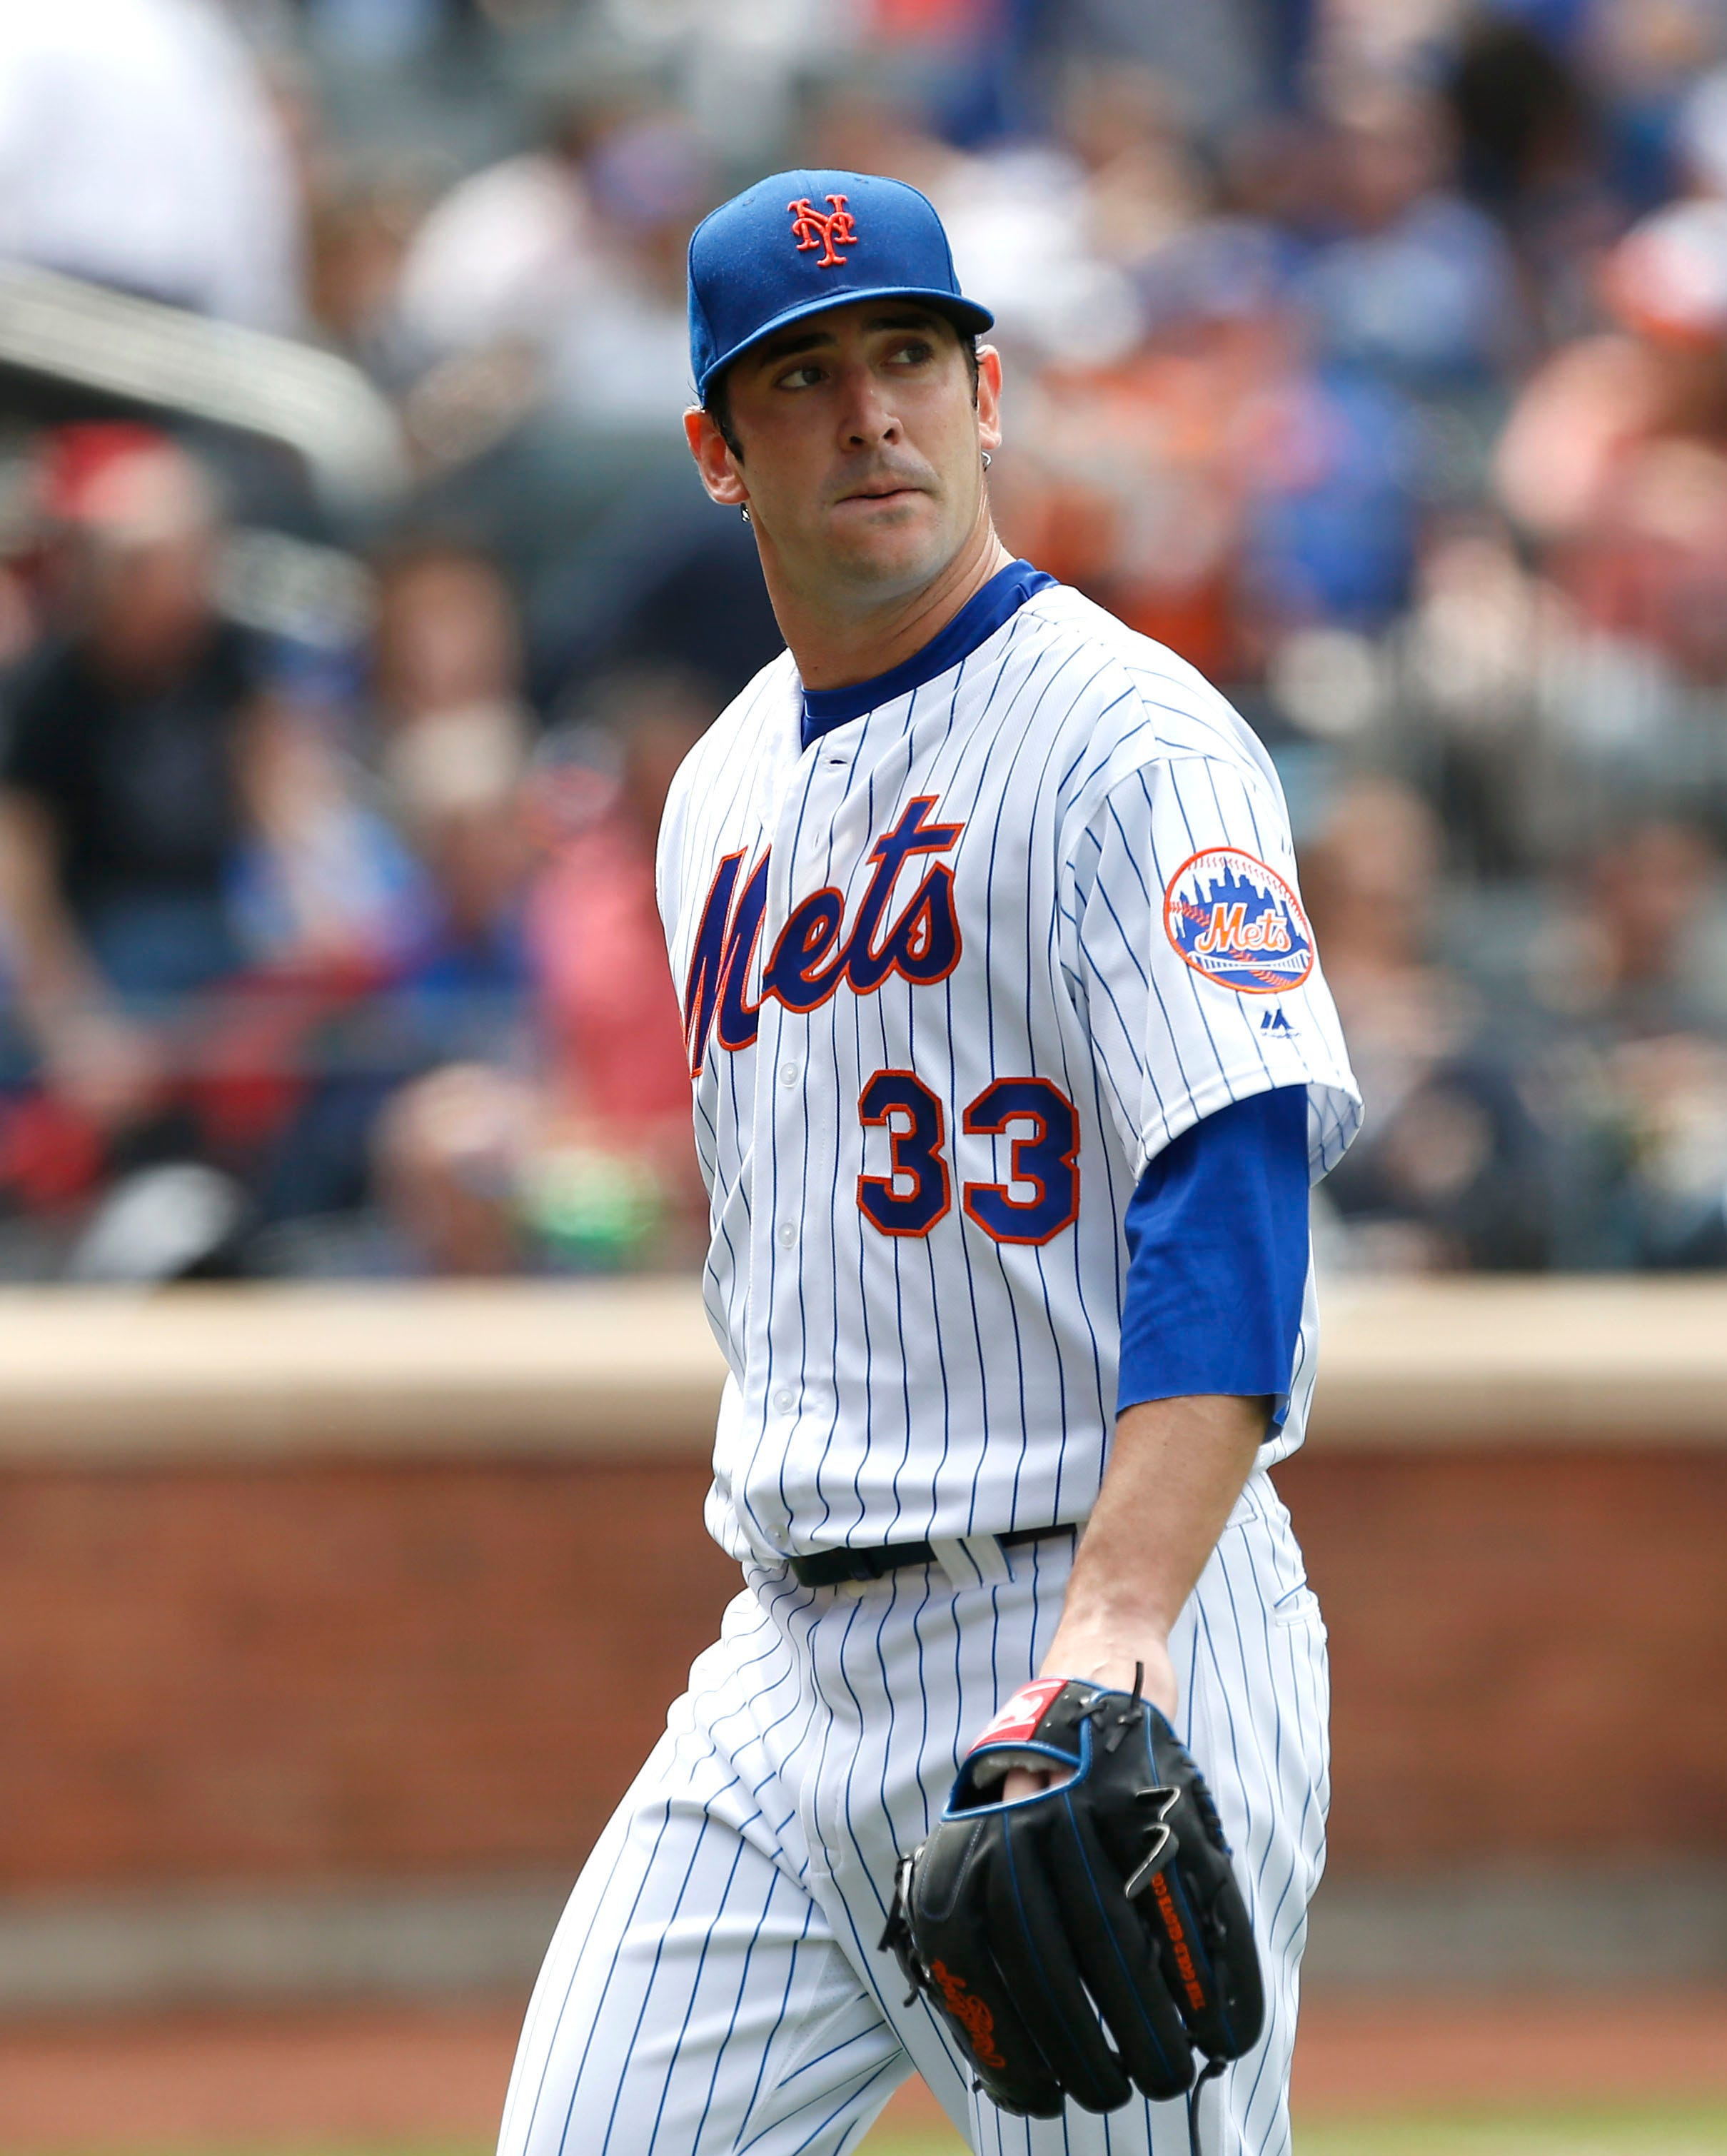 636299426011595365-SW-MATT-HARVEY-90523604 'Embarrassed' Matt Harvey apologizes to Mets for skipping game